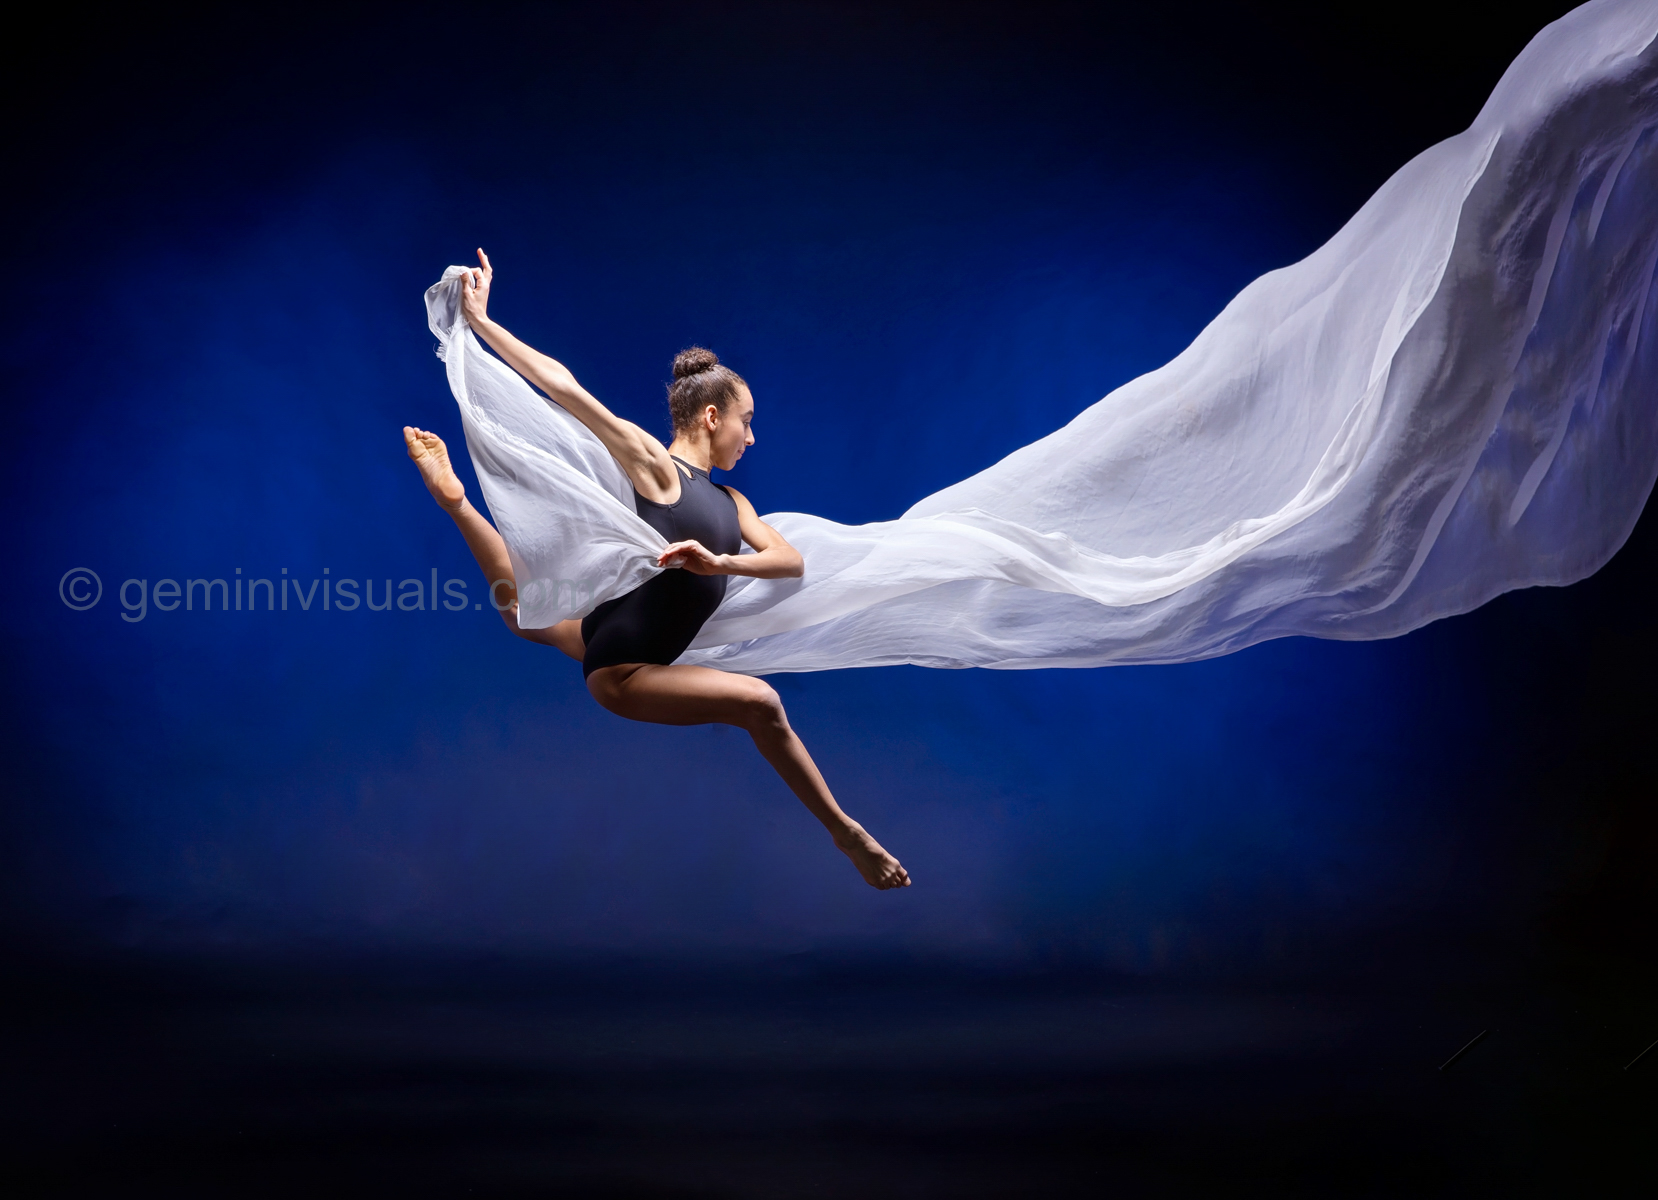 dance creatives, dancer photos, creative dance photo, gemini visuals photography